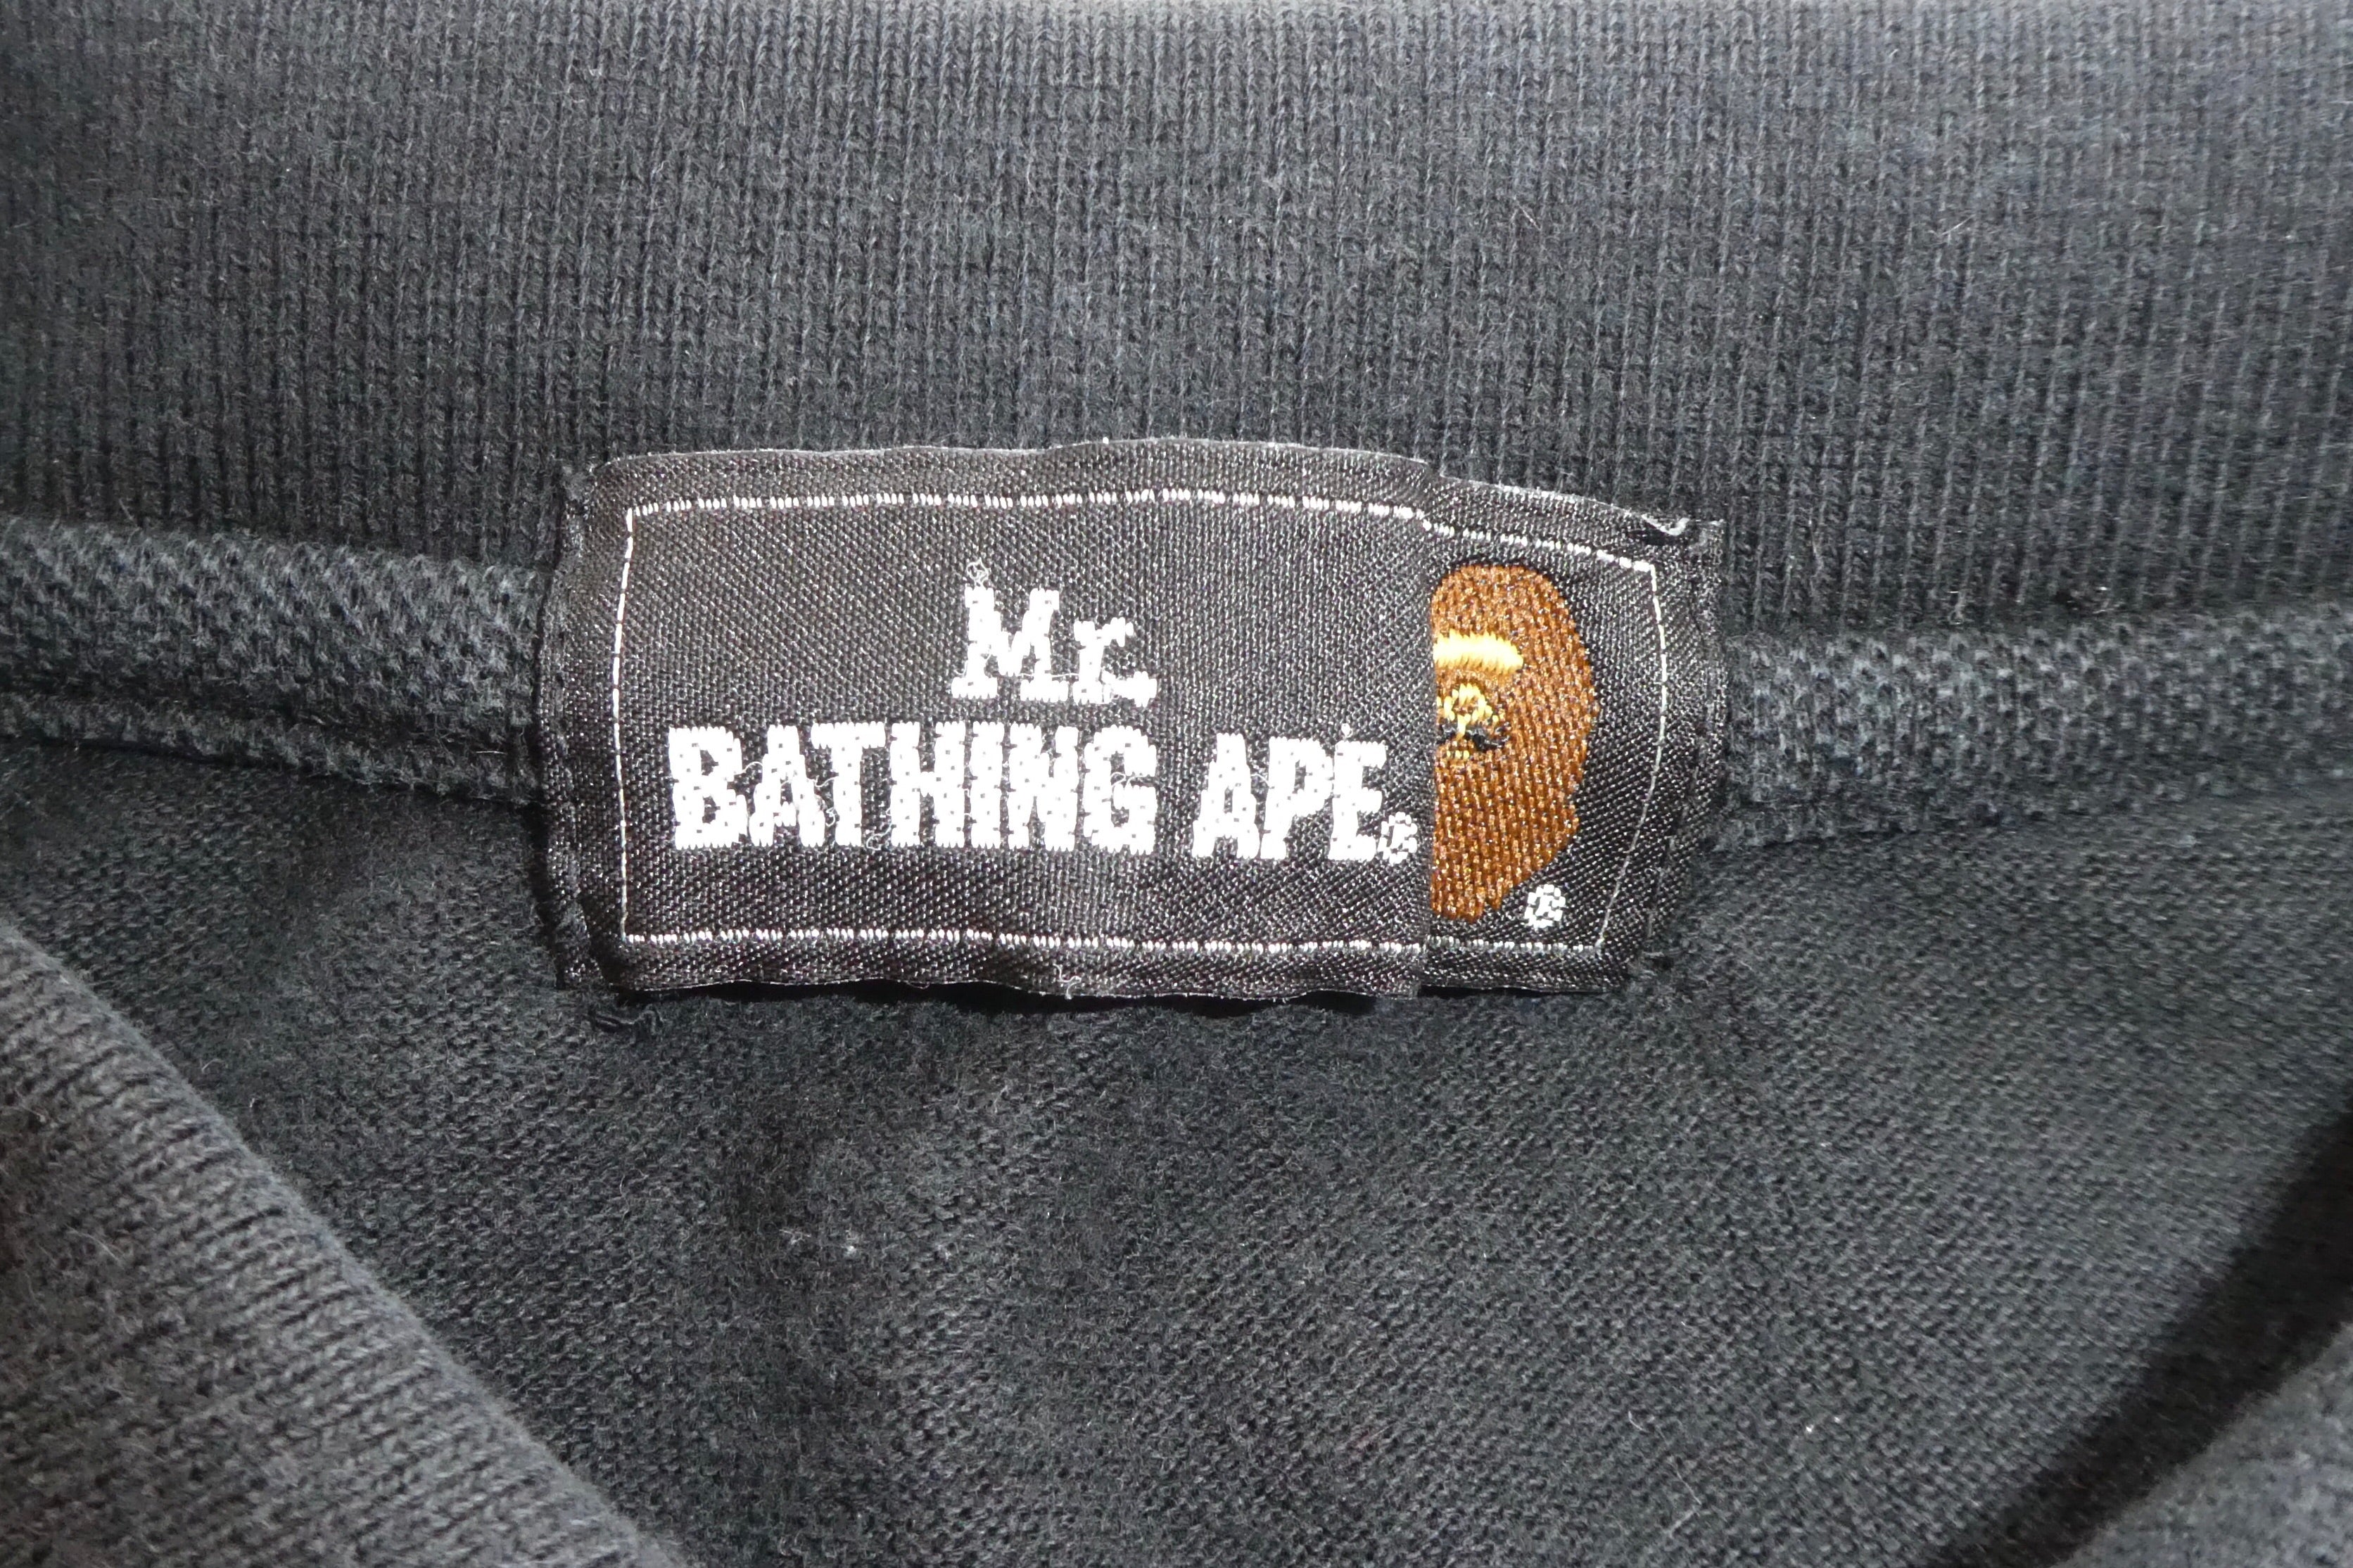 Bape Mr Bathing Ape Camo Polo Shirt - Small